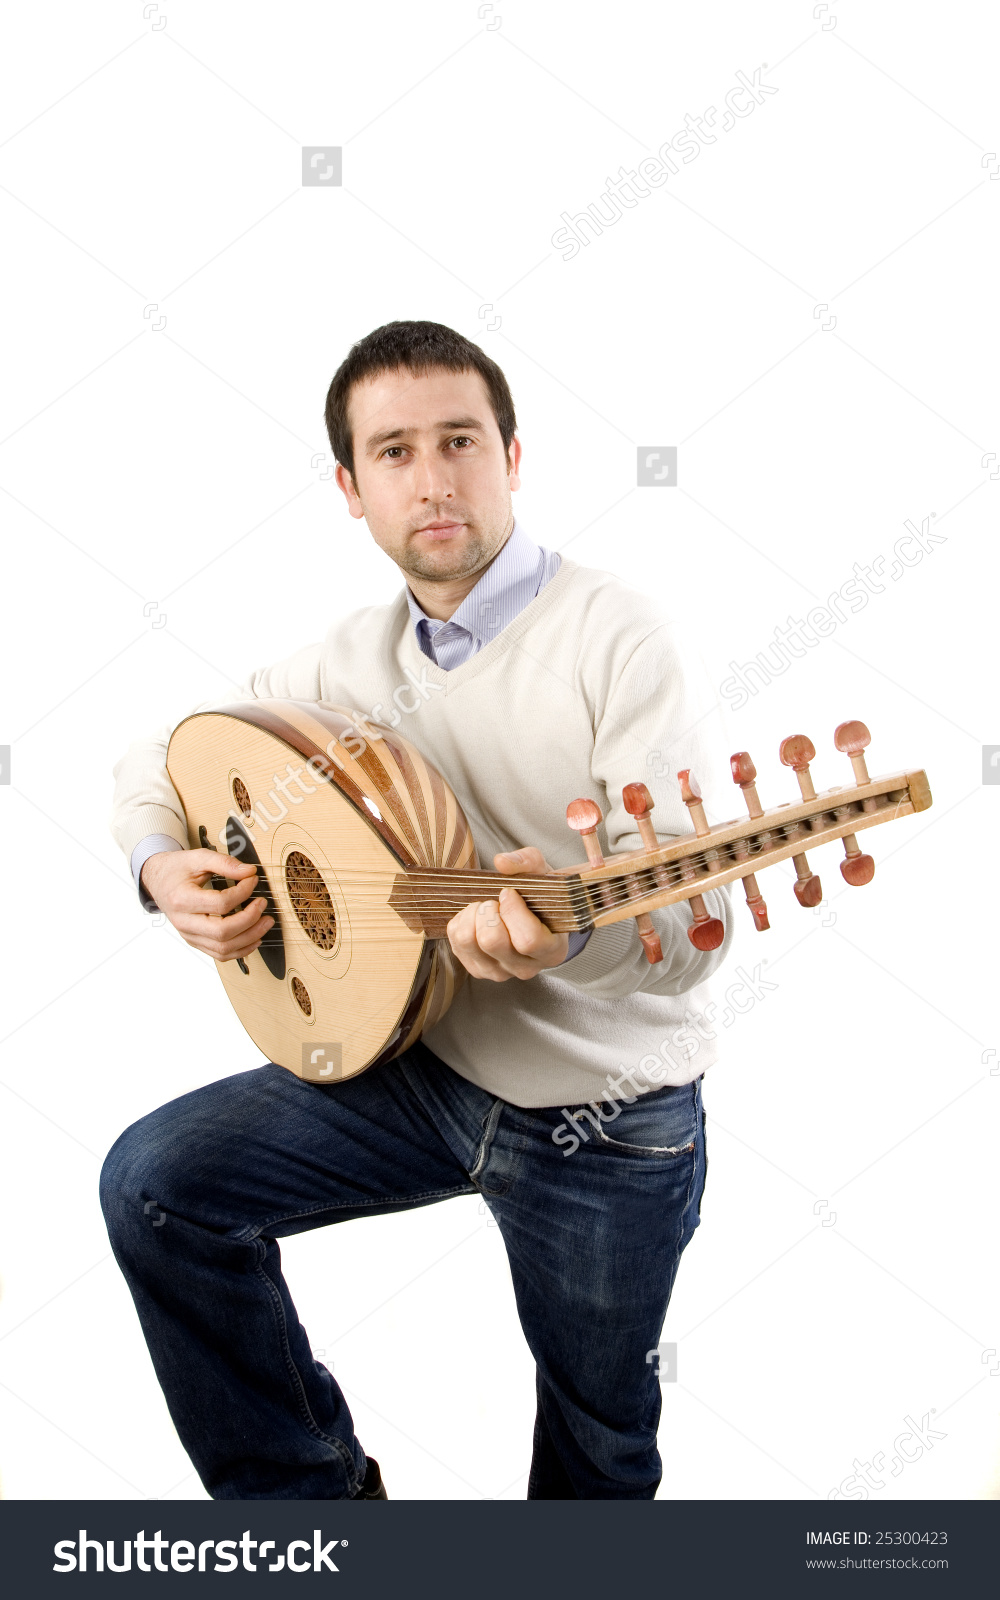 Lute Player Stock Photo 25300423.